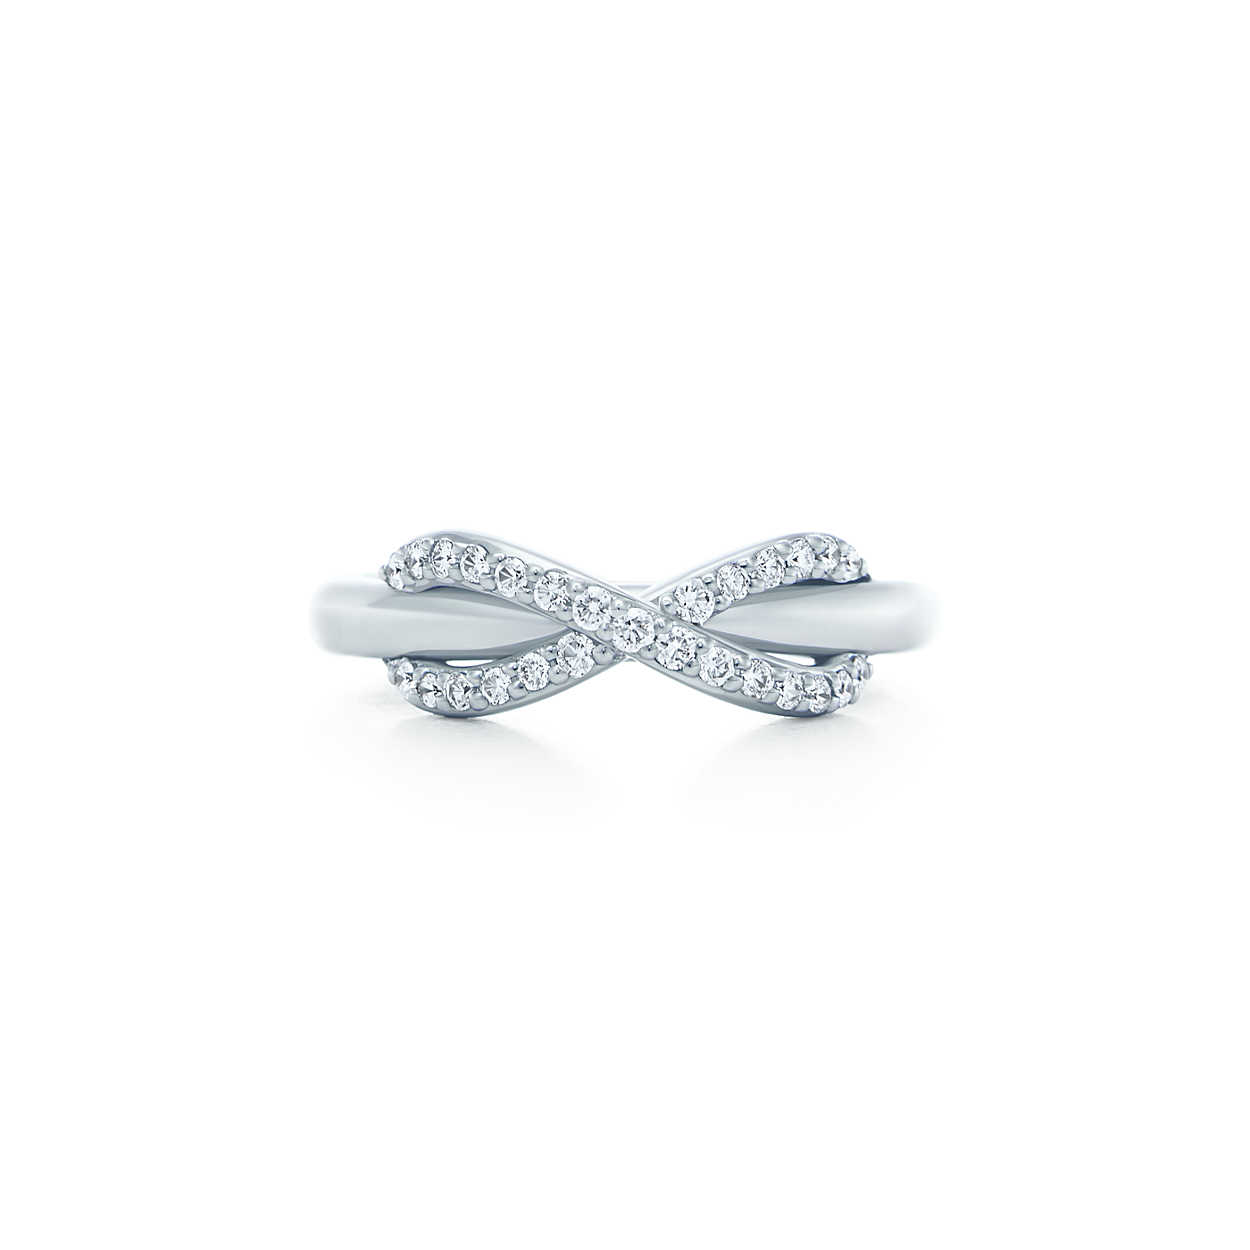 "Tiffany & Co. ""Infinity"" Ring"